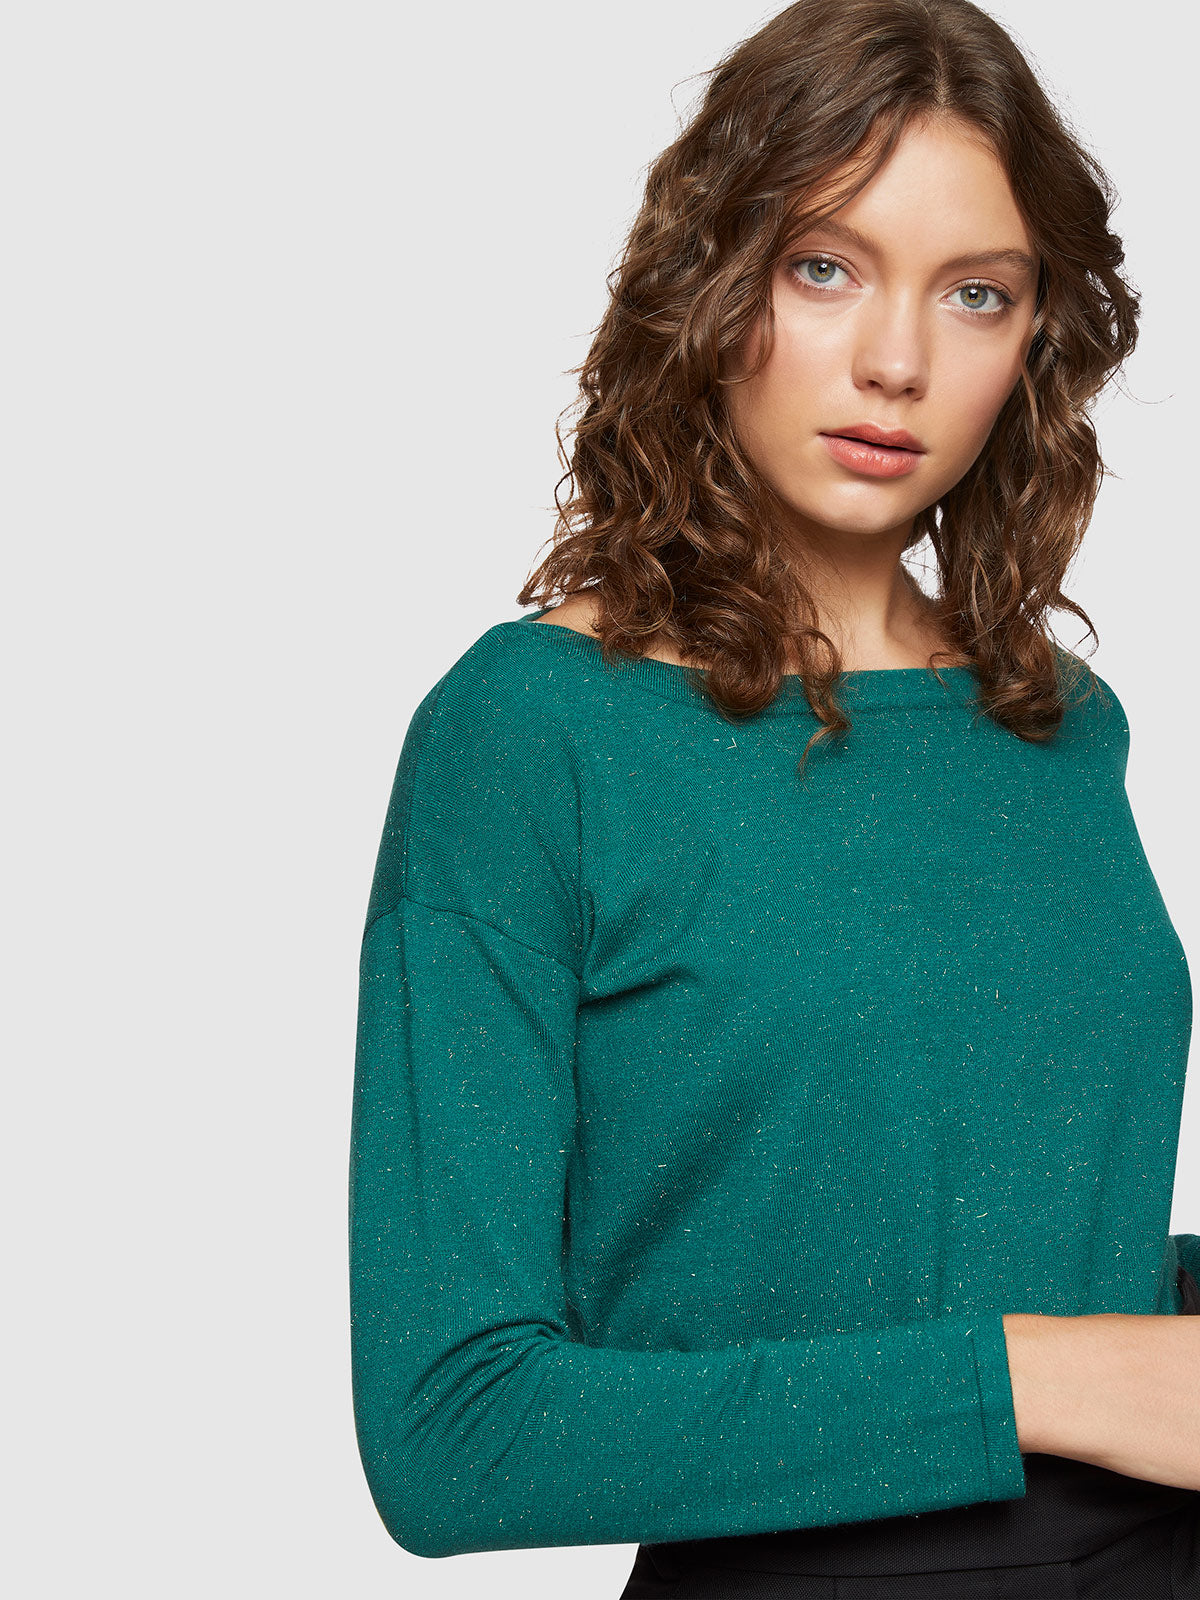 GIANNA METALLIC BOATNECK KNIT